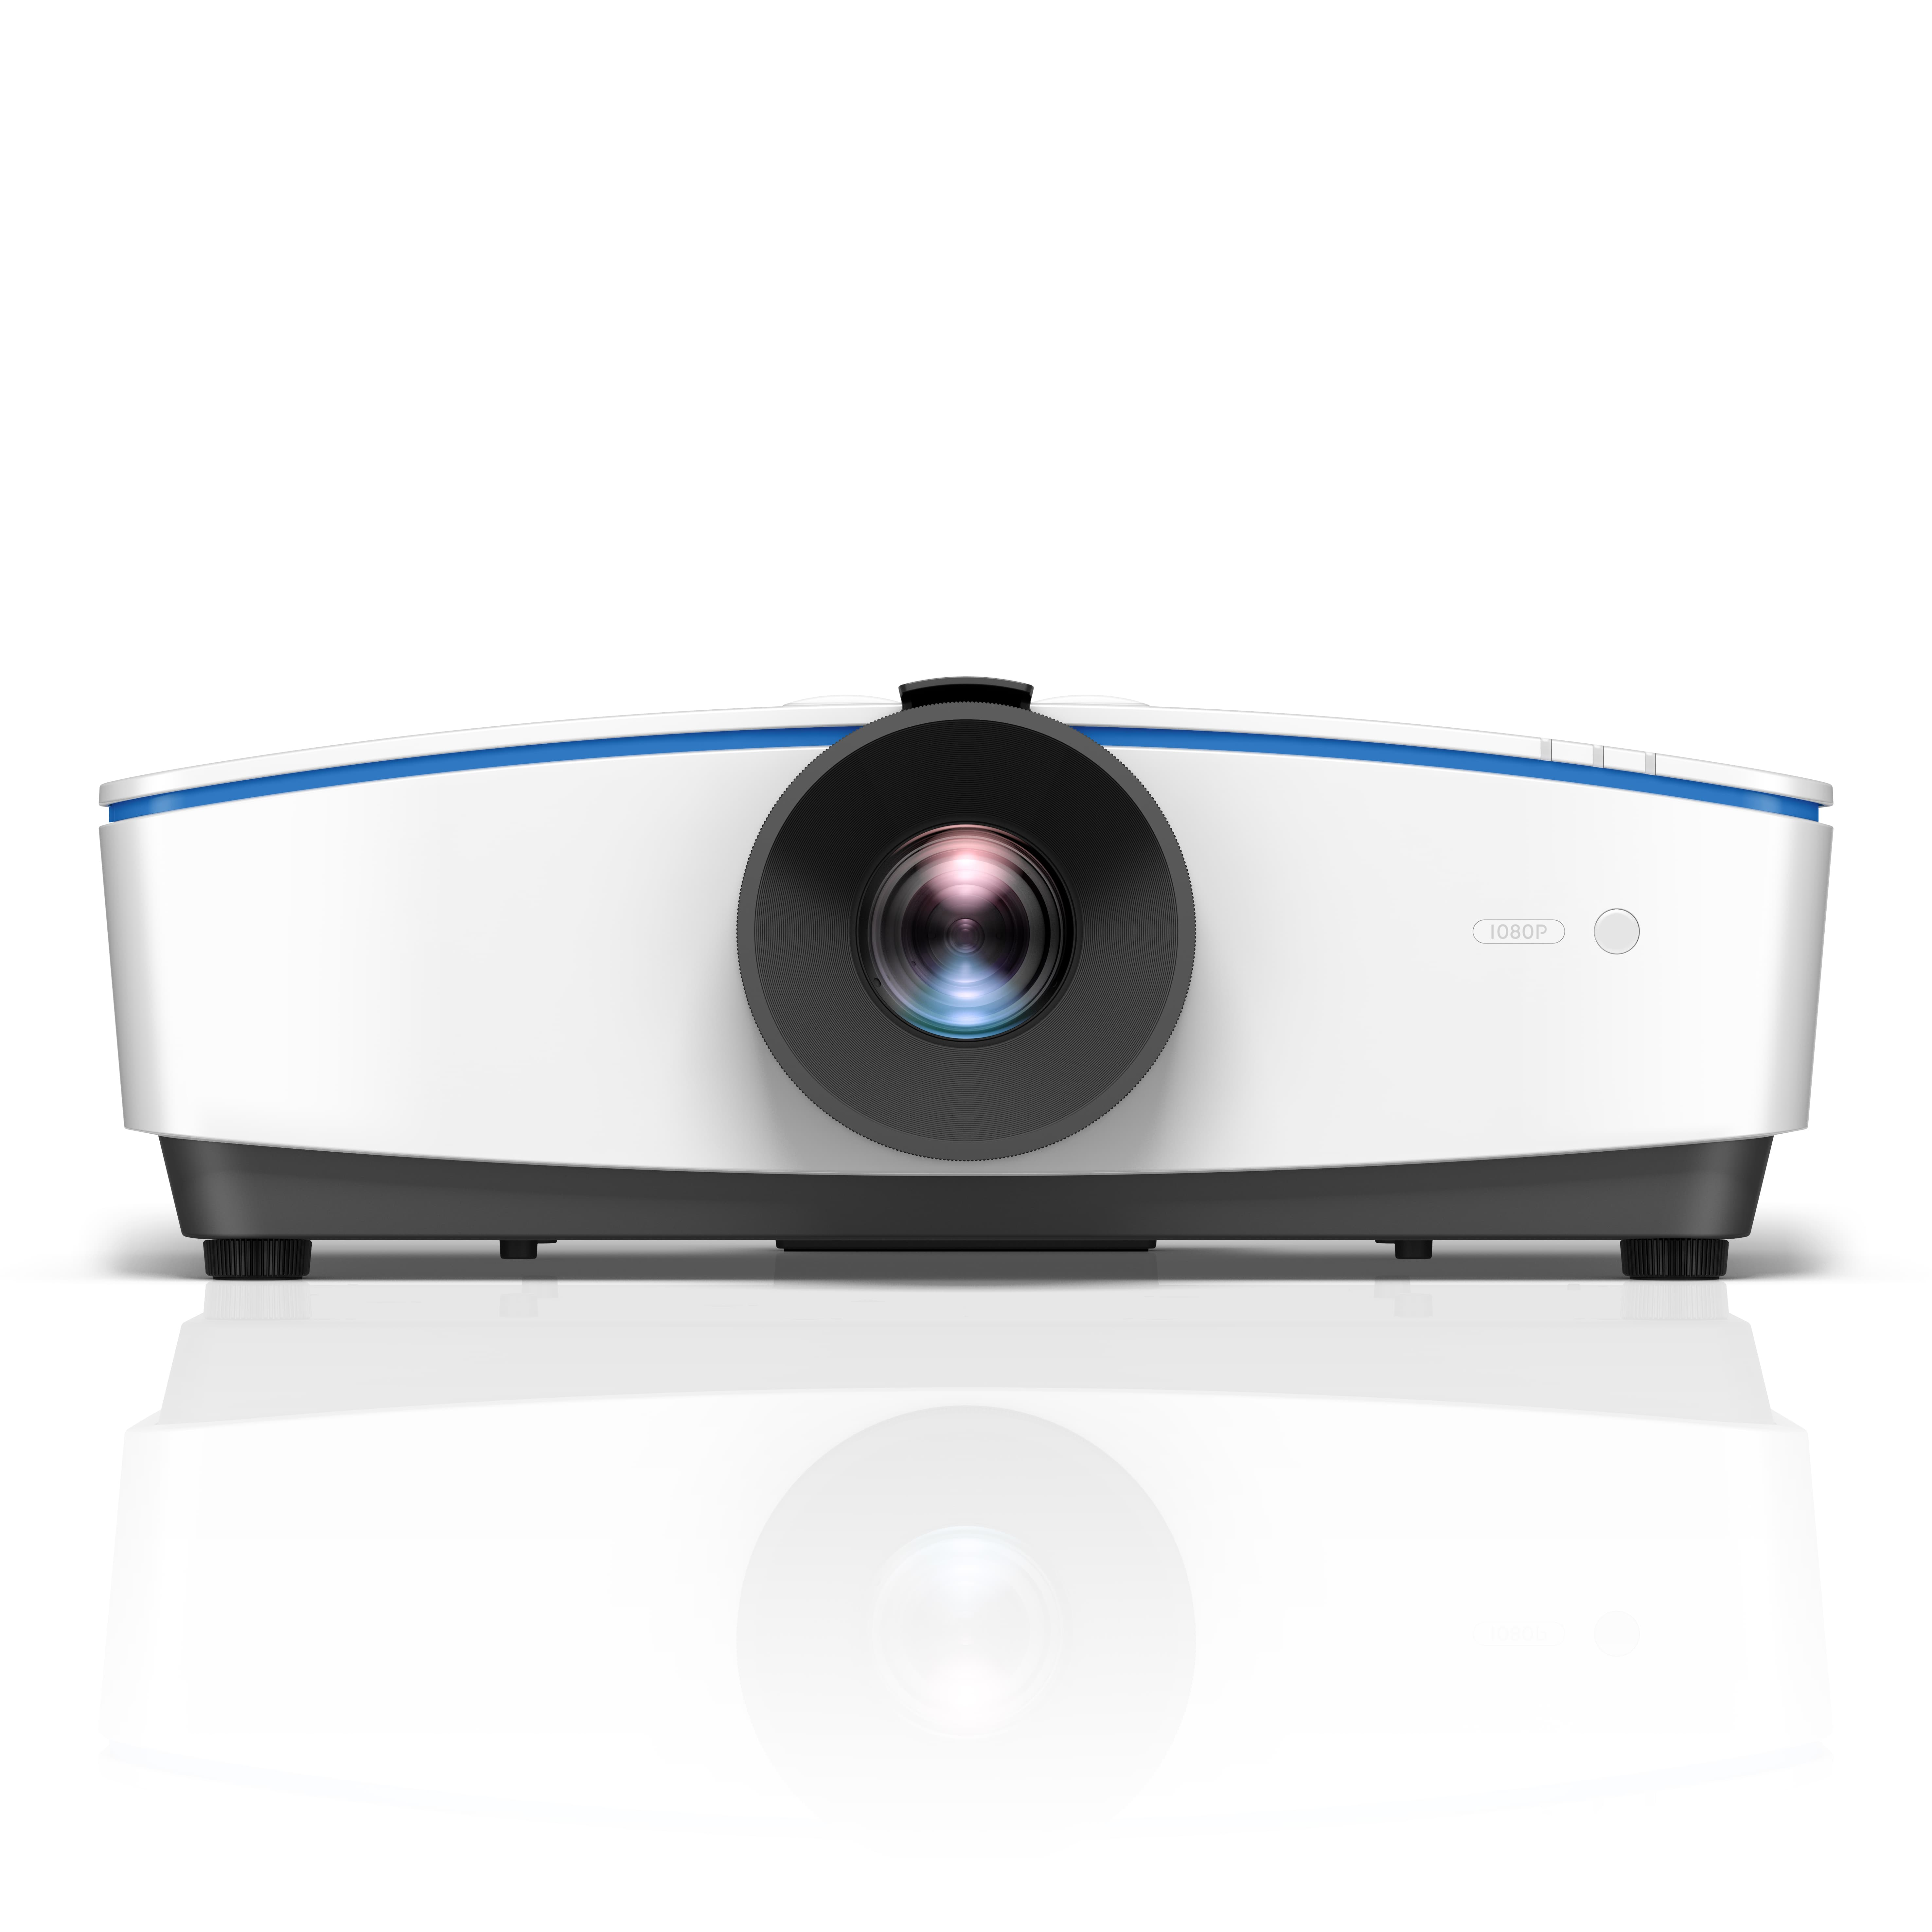 BenQ LH770 - 5000 Lumens 1920 x 1080 (Full HD) Resolution BenQ Projector